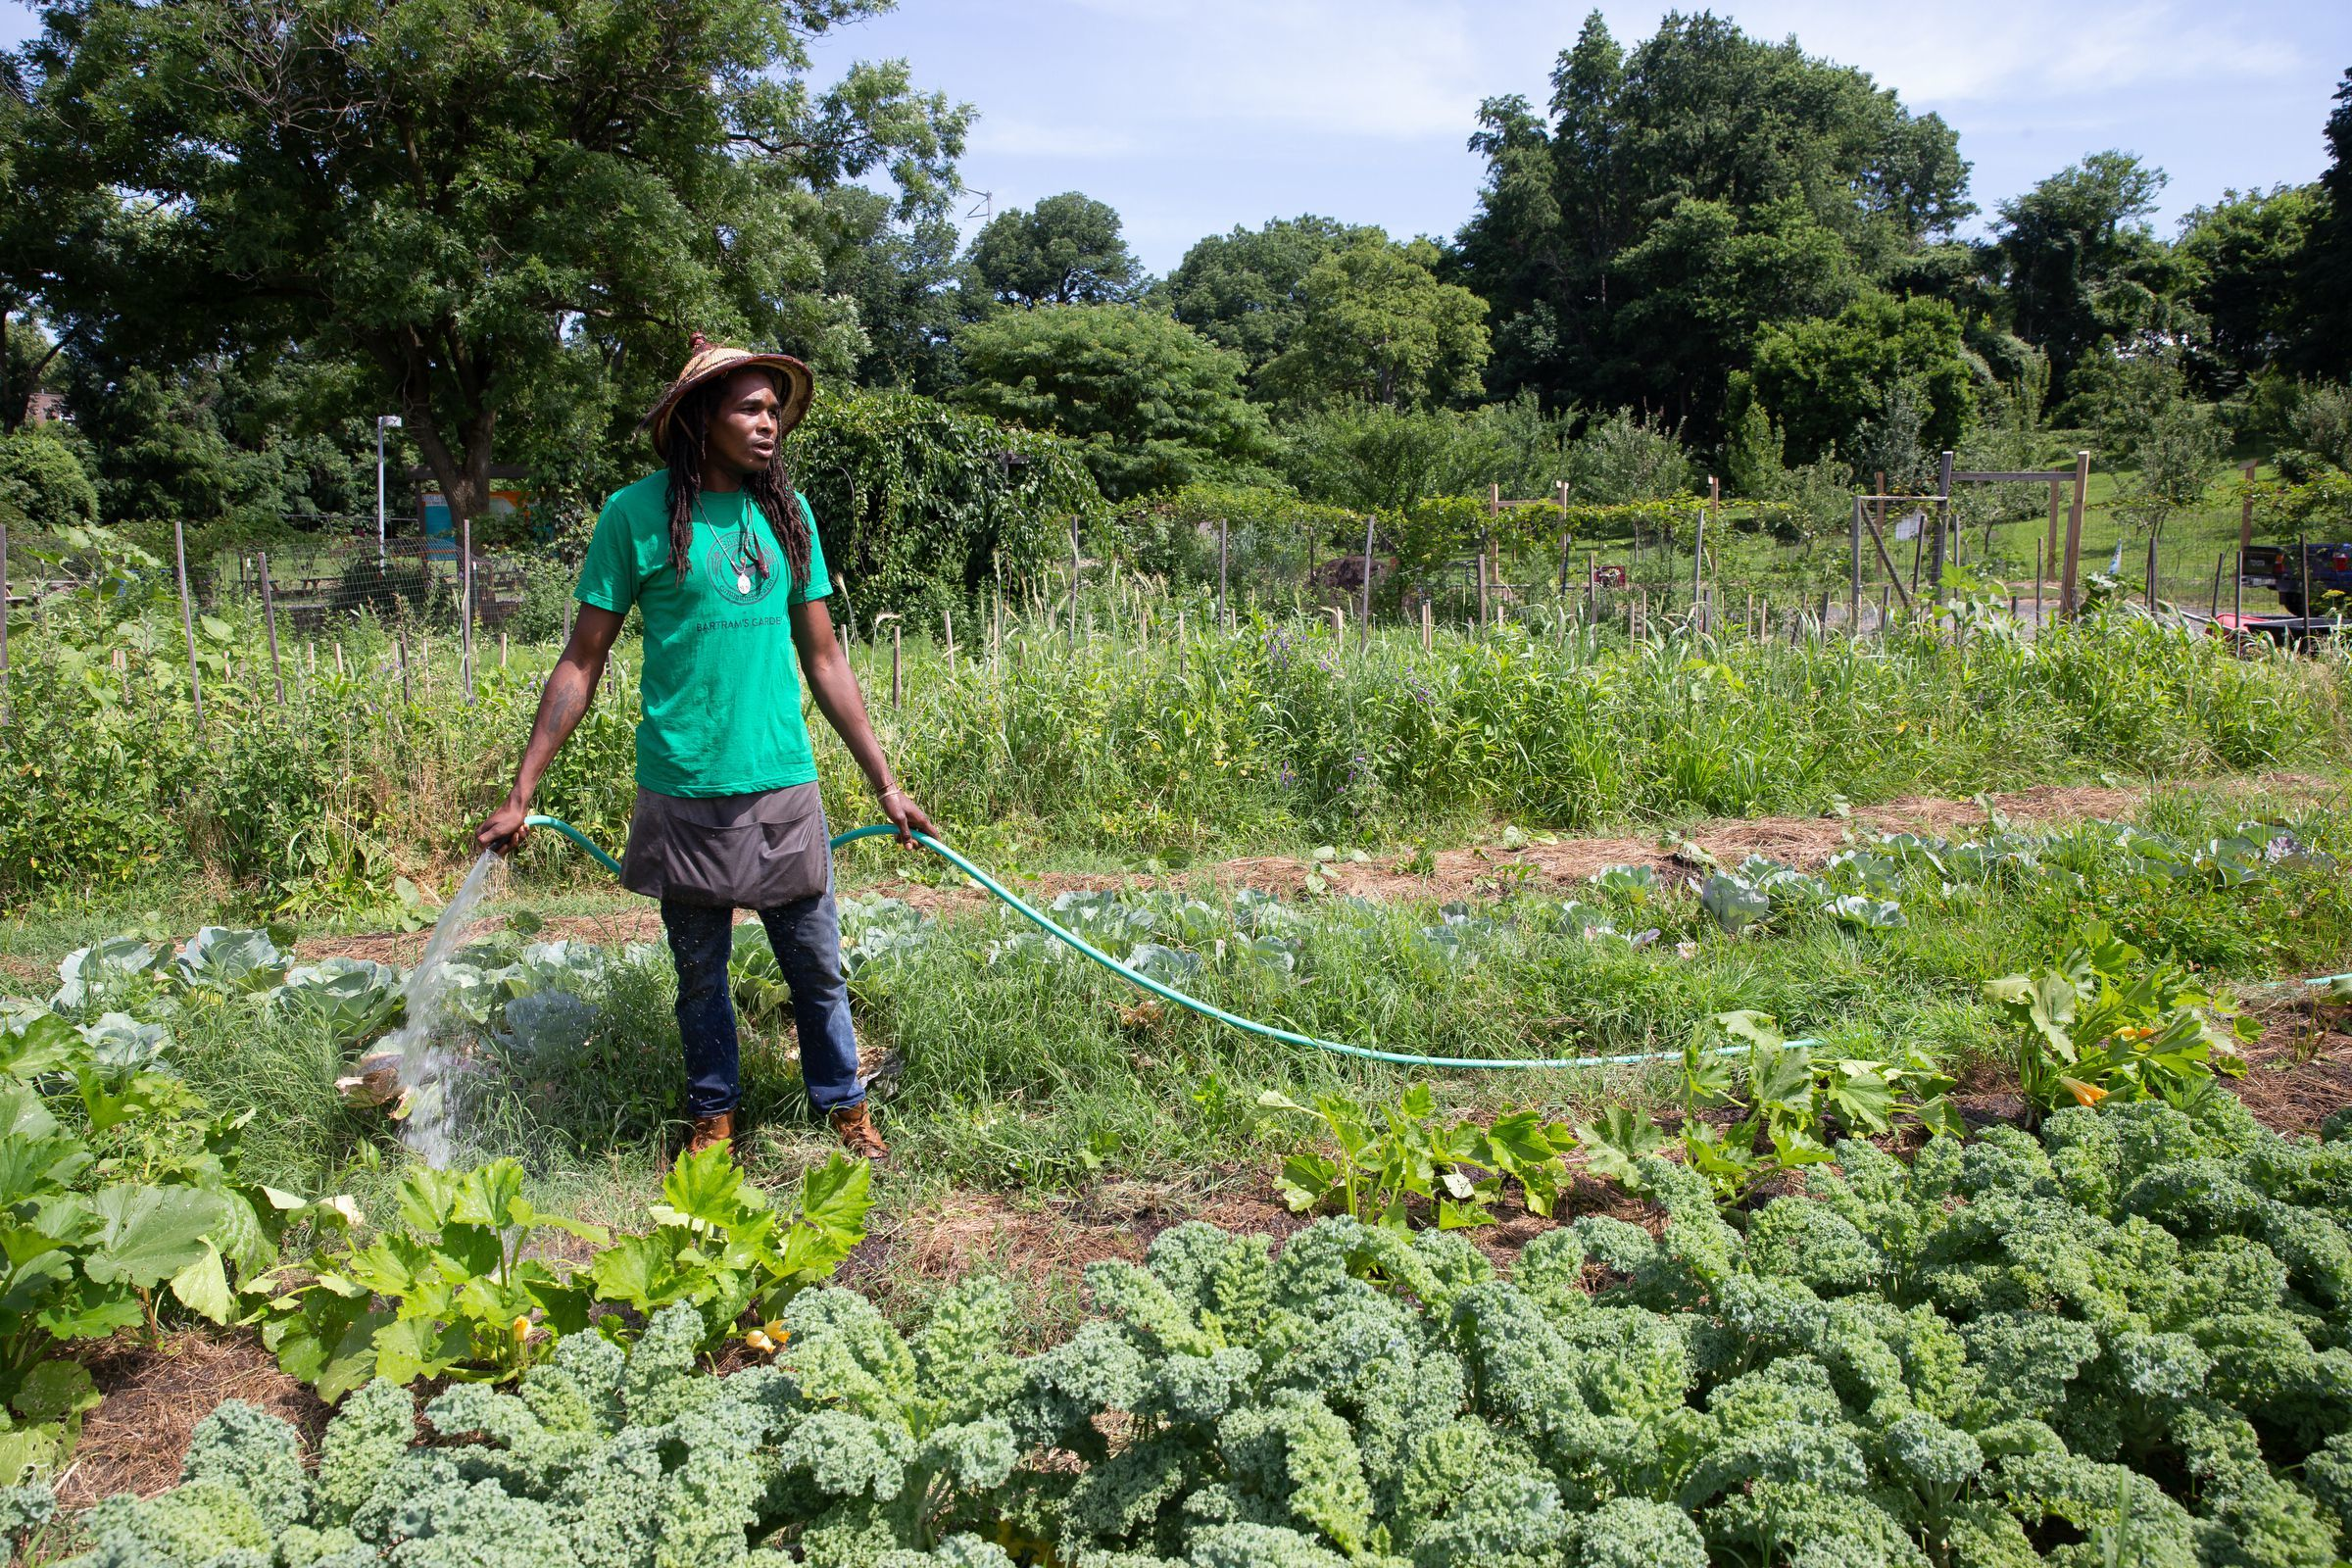 philly.com - Frank Kummer - Urban farming in Philadelphia to get growing with a plan that includes hundreds of vacant lots